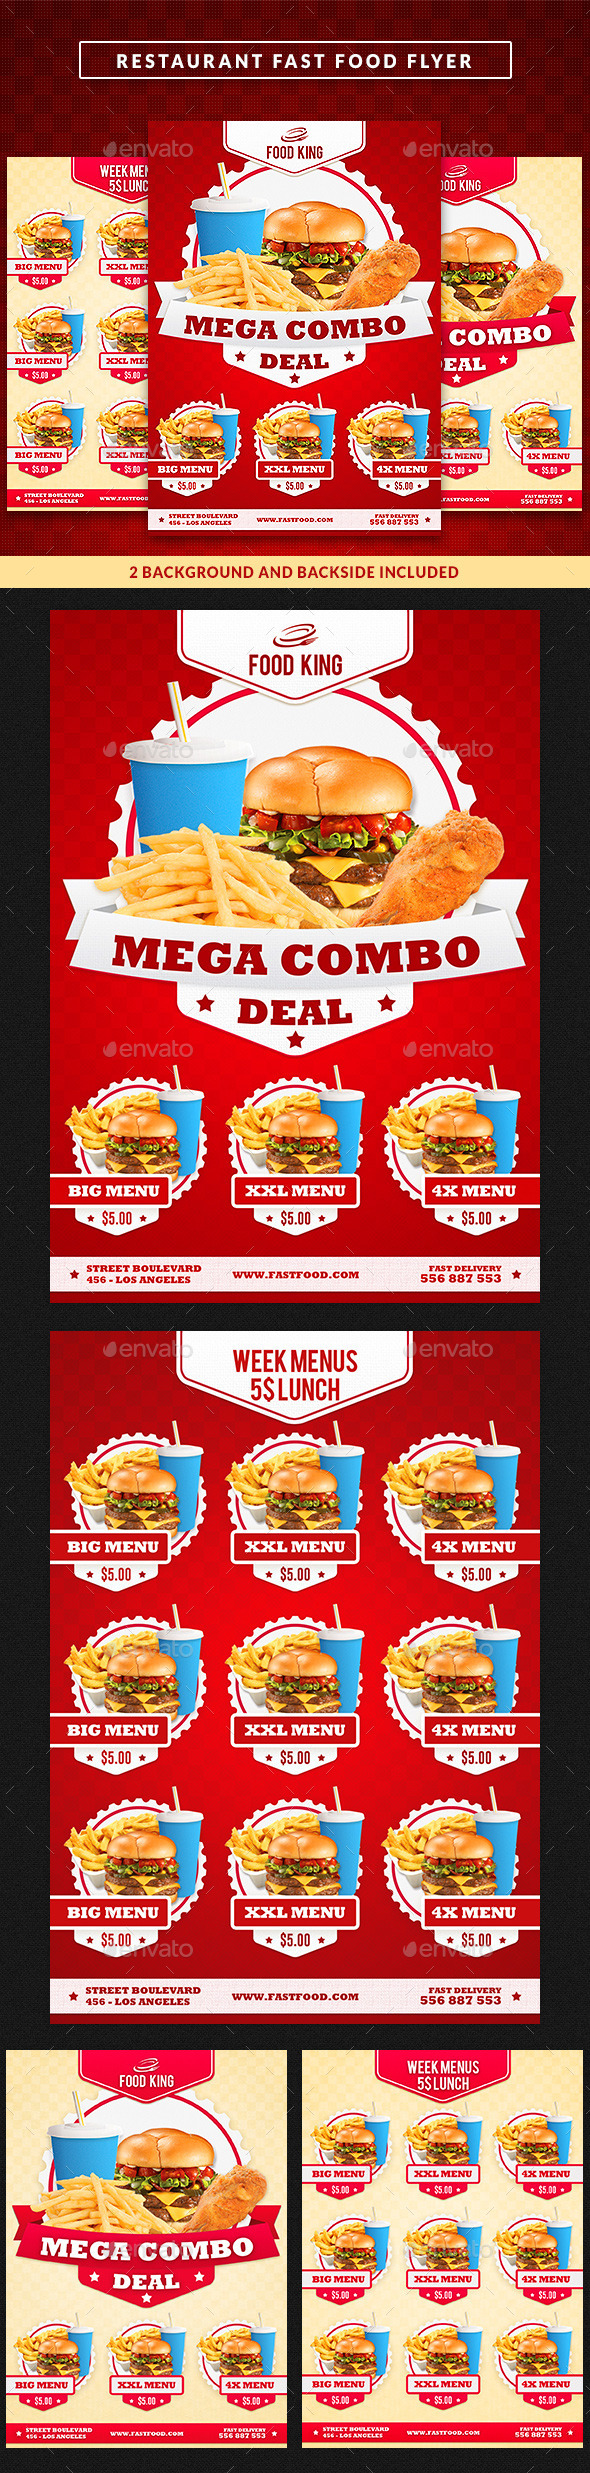 Restaurant Fast Food Menu Flyer by GilleDeVille | GraphicRiver